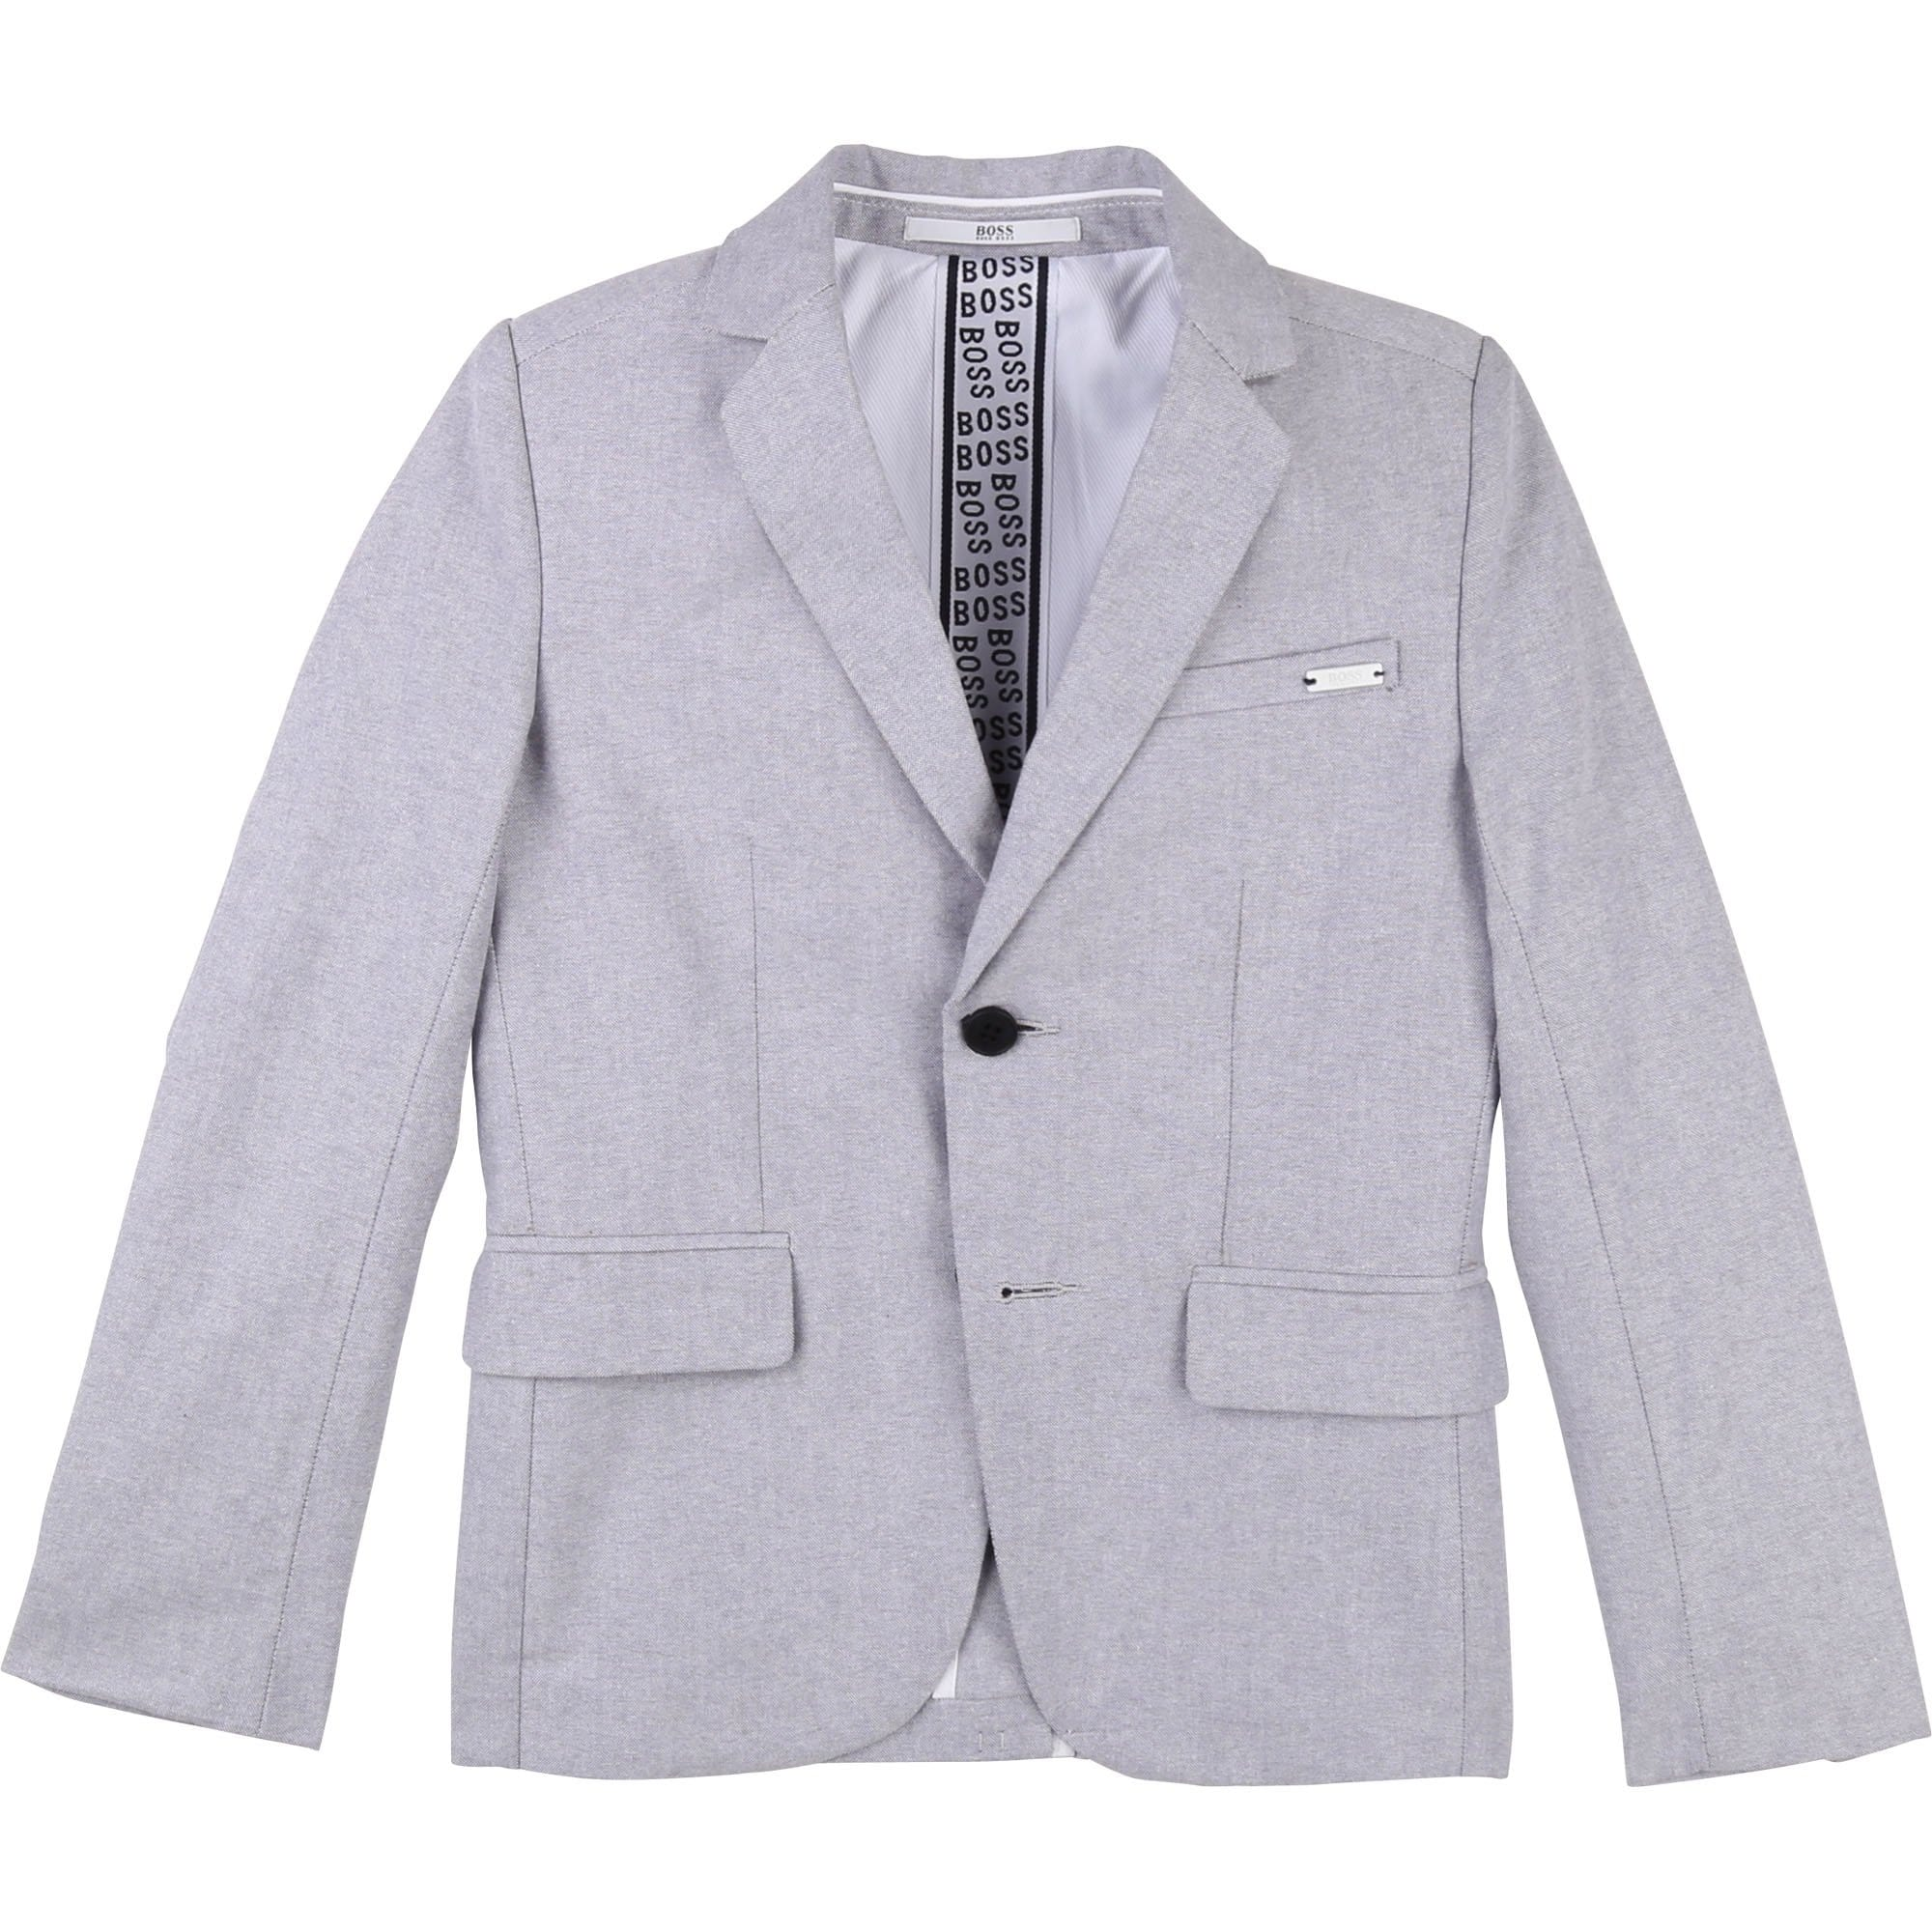 Hugo Boss Pale Blue Blazer J26396/Z400